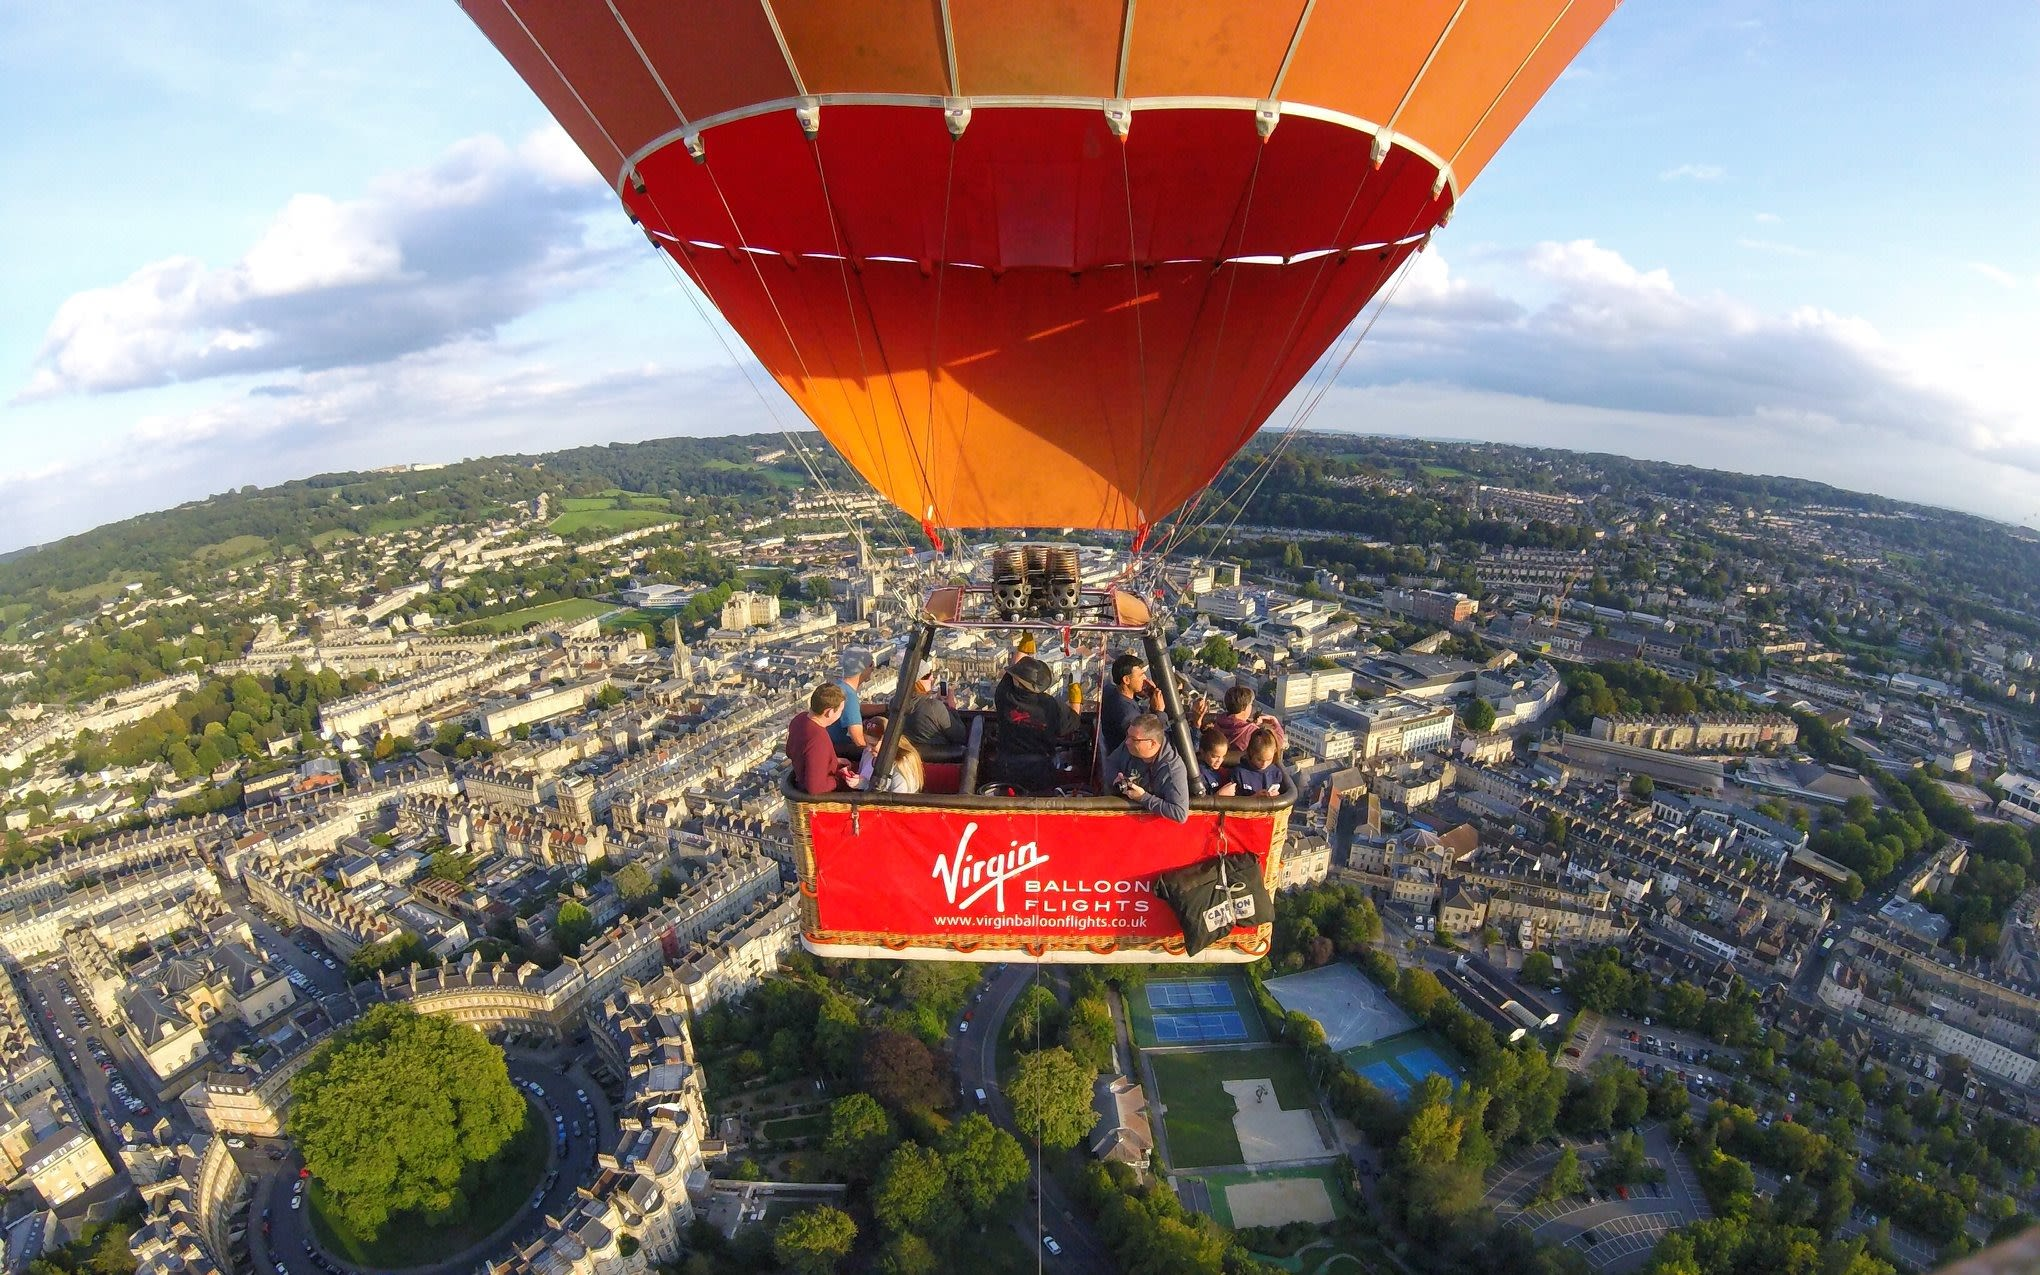 A red Virgin Balloon Flights hot air balloon flies over a city